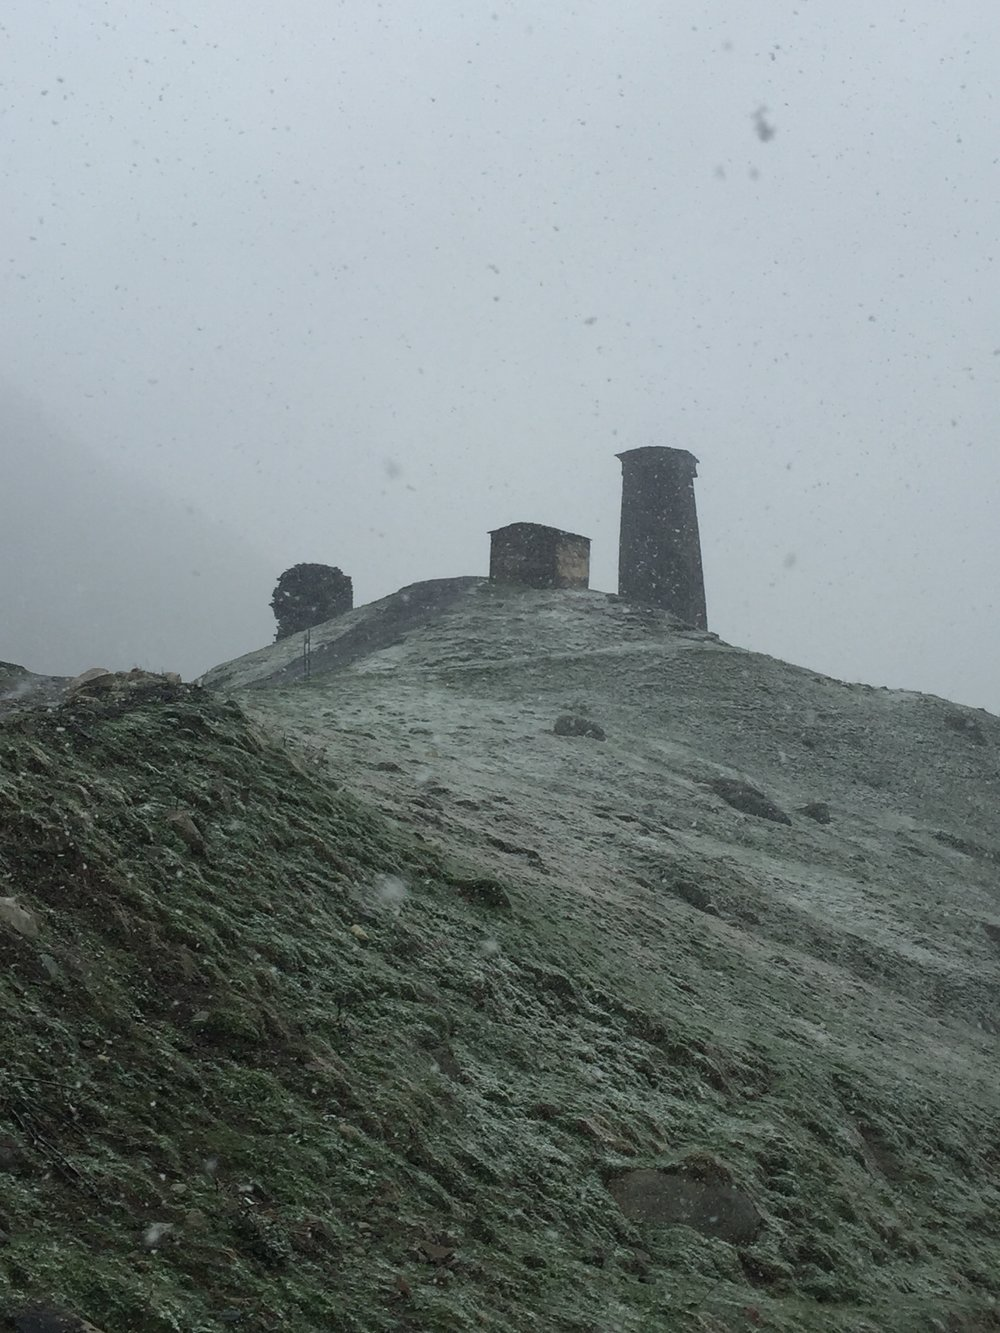 The snow was falling on Ushguli